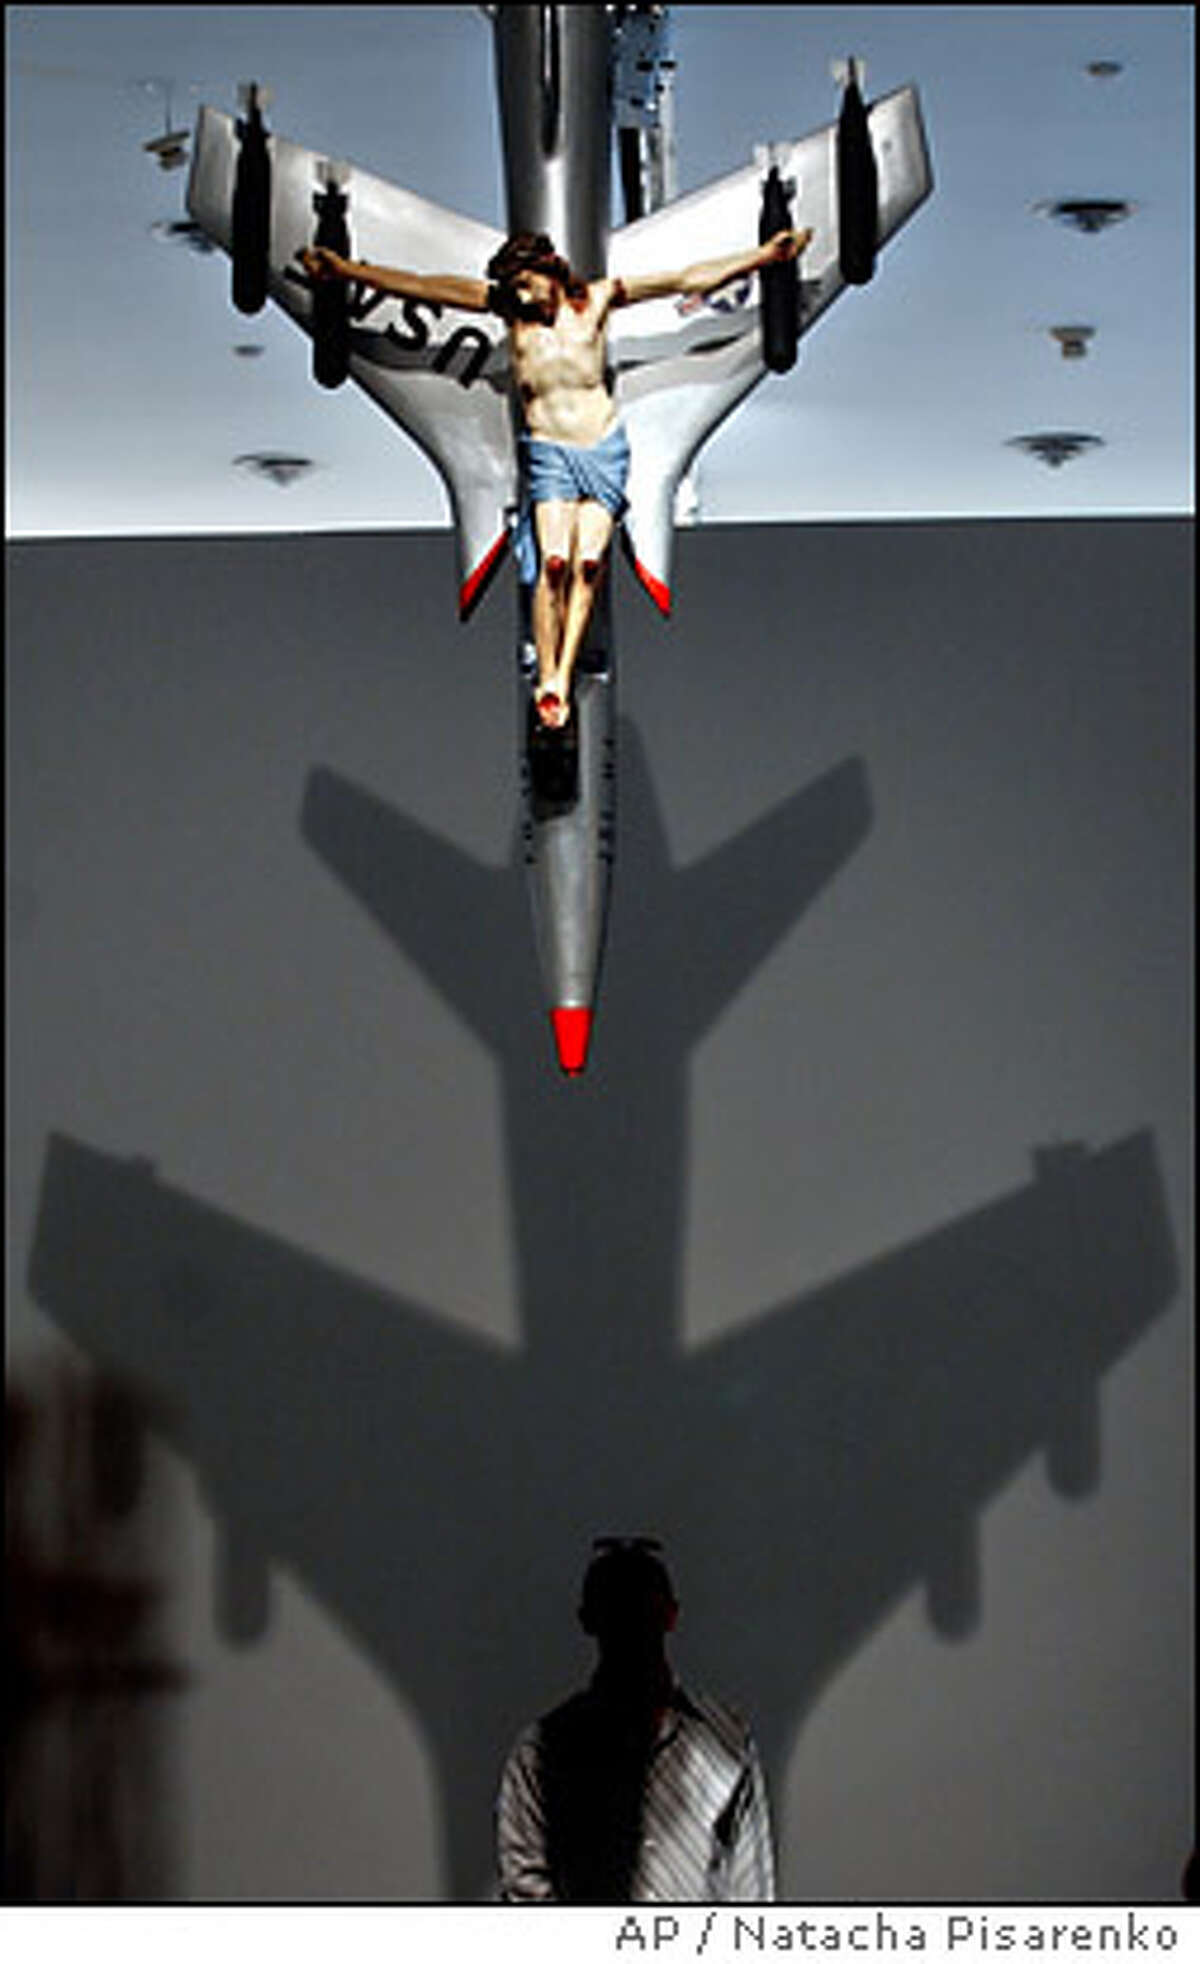 Argentine artist Leon Ferrari was known for works such as this figure of Christ crucified on a U.S. combat plane that often sparked controvery. Jorge Mario Bergoglio, before he became Pope Francis, tried to shut down an exhibit of his work. A judge agreed, but a different judge later overturned the decision. Source:Religion News Service